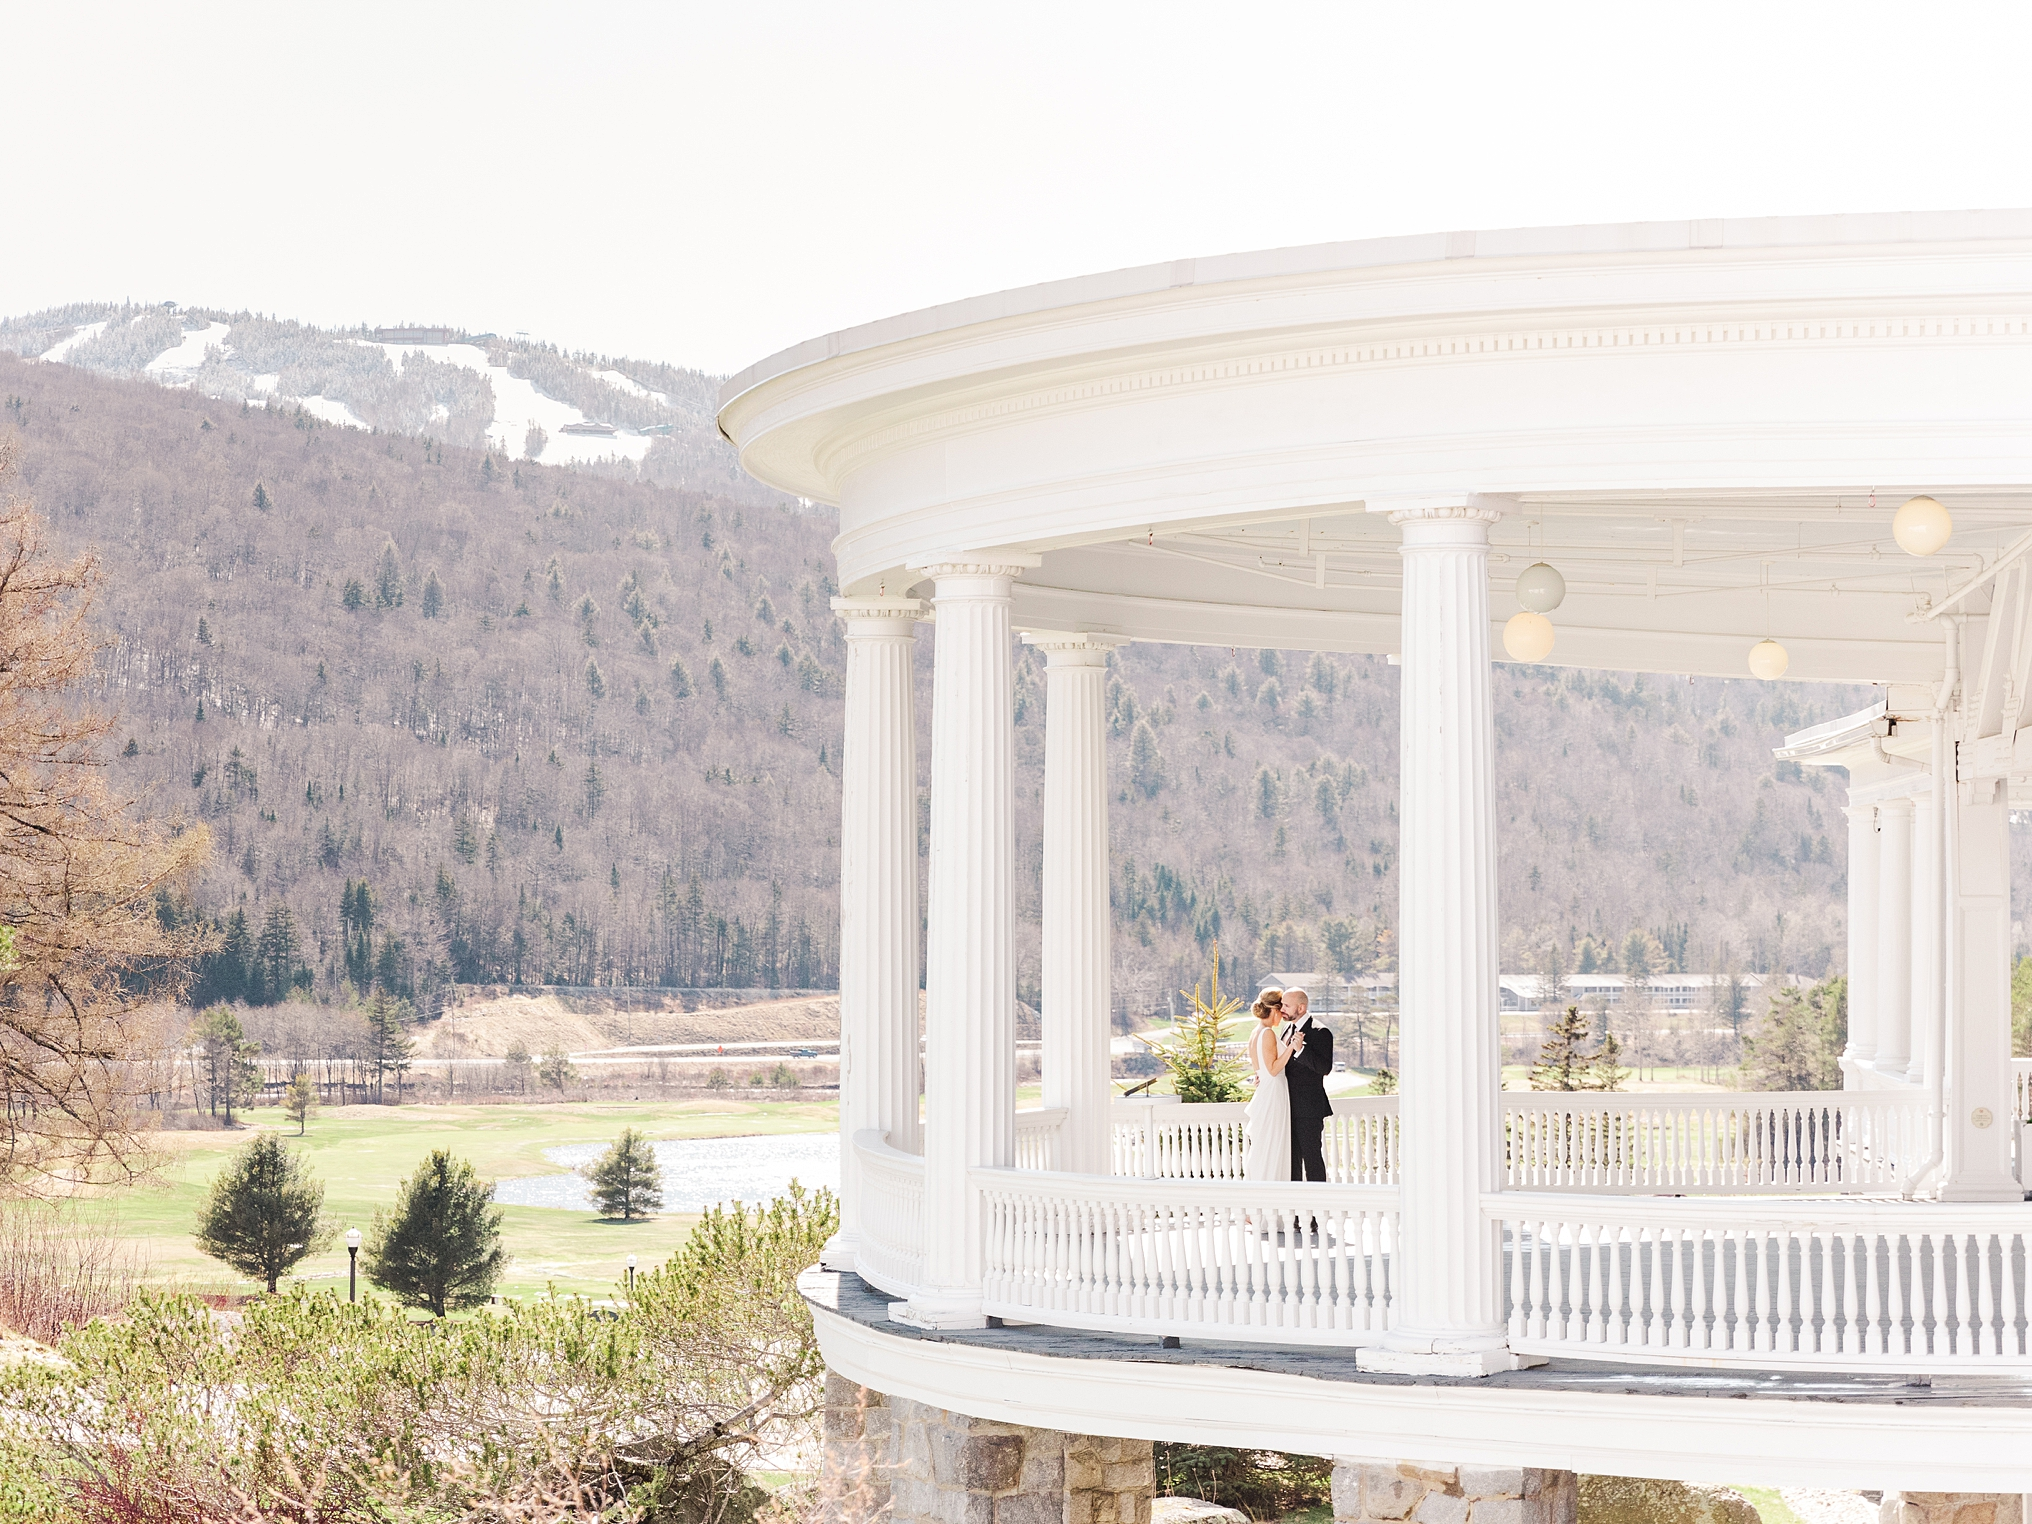 A bride and groom at their Mount Washington Resort wedding in the Spring.